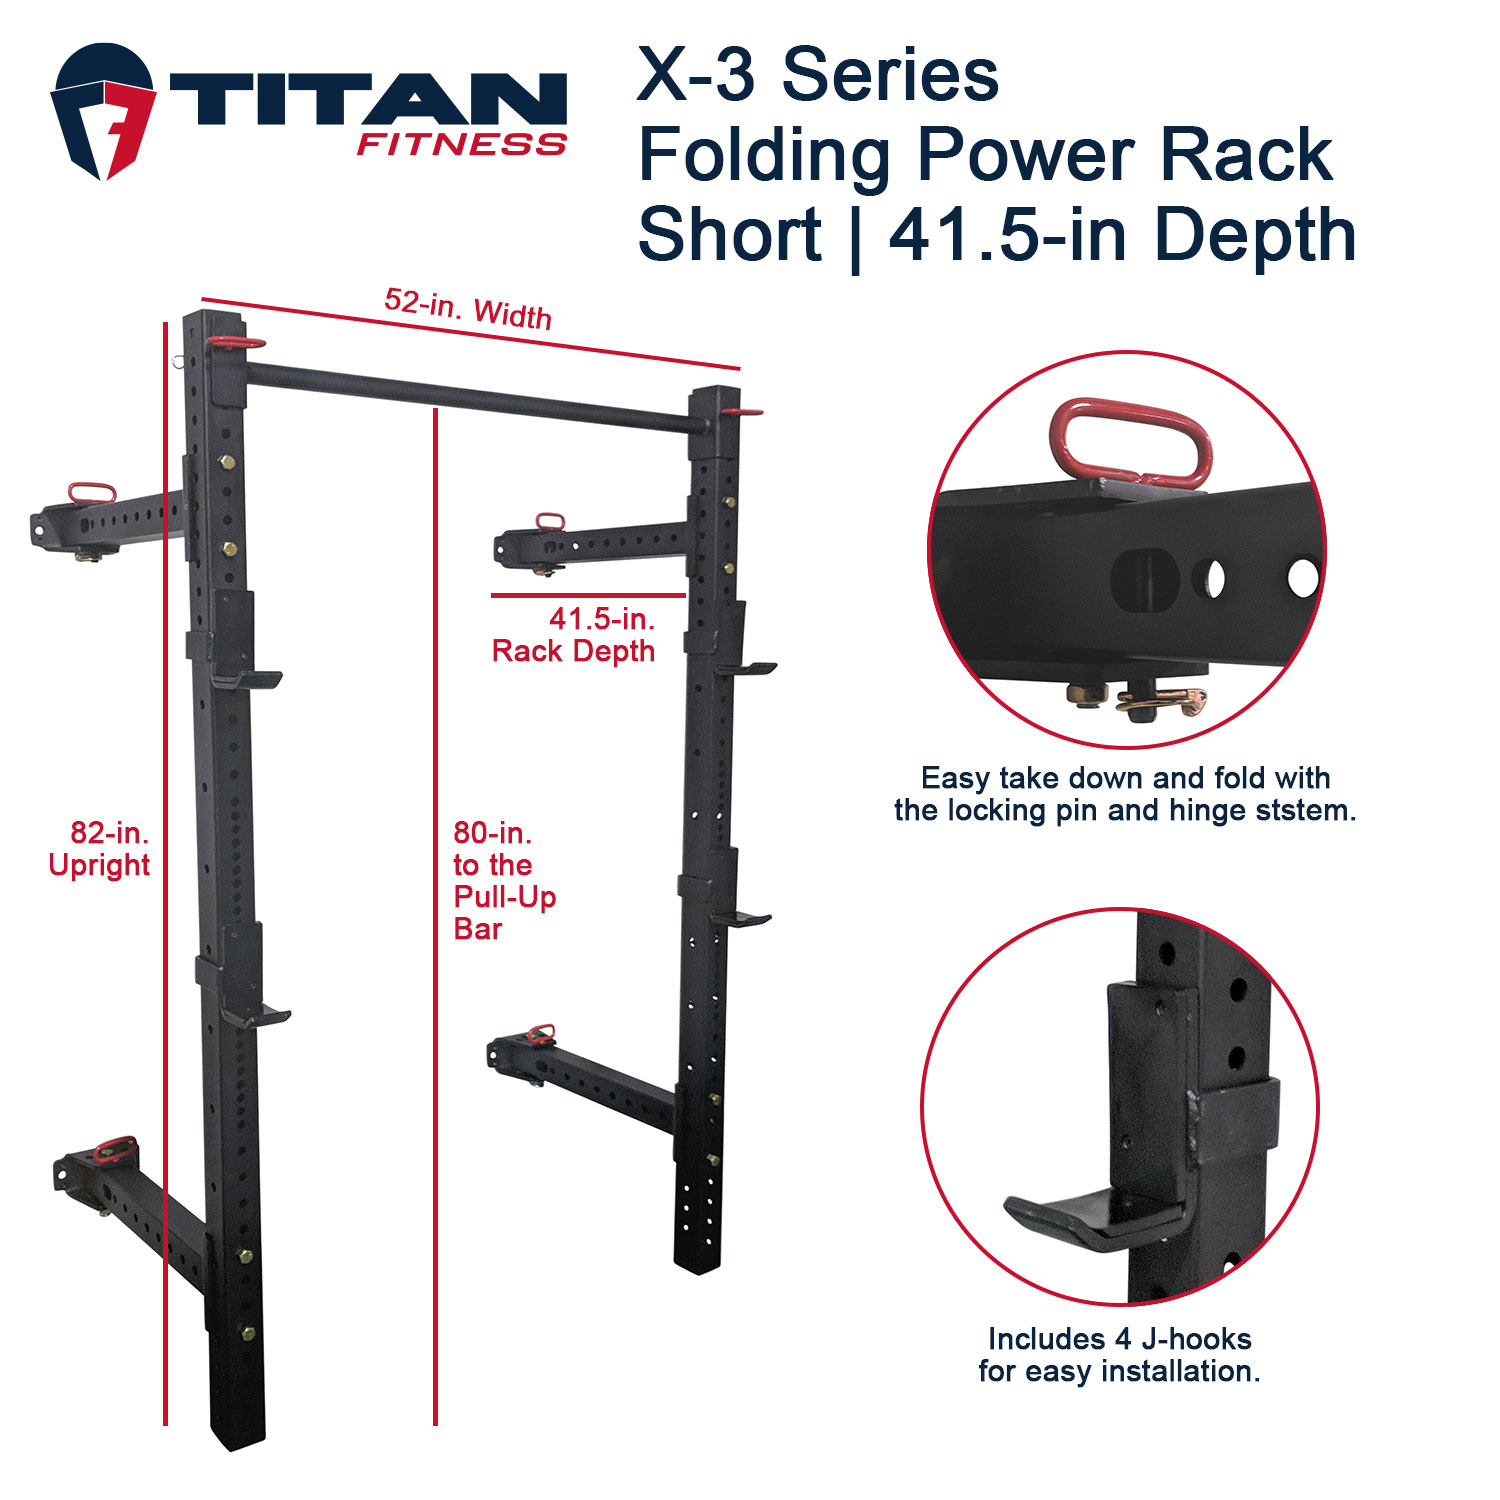 titan fitness x 3 series short folding power rack wall mount with 41 5 in depth